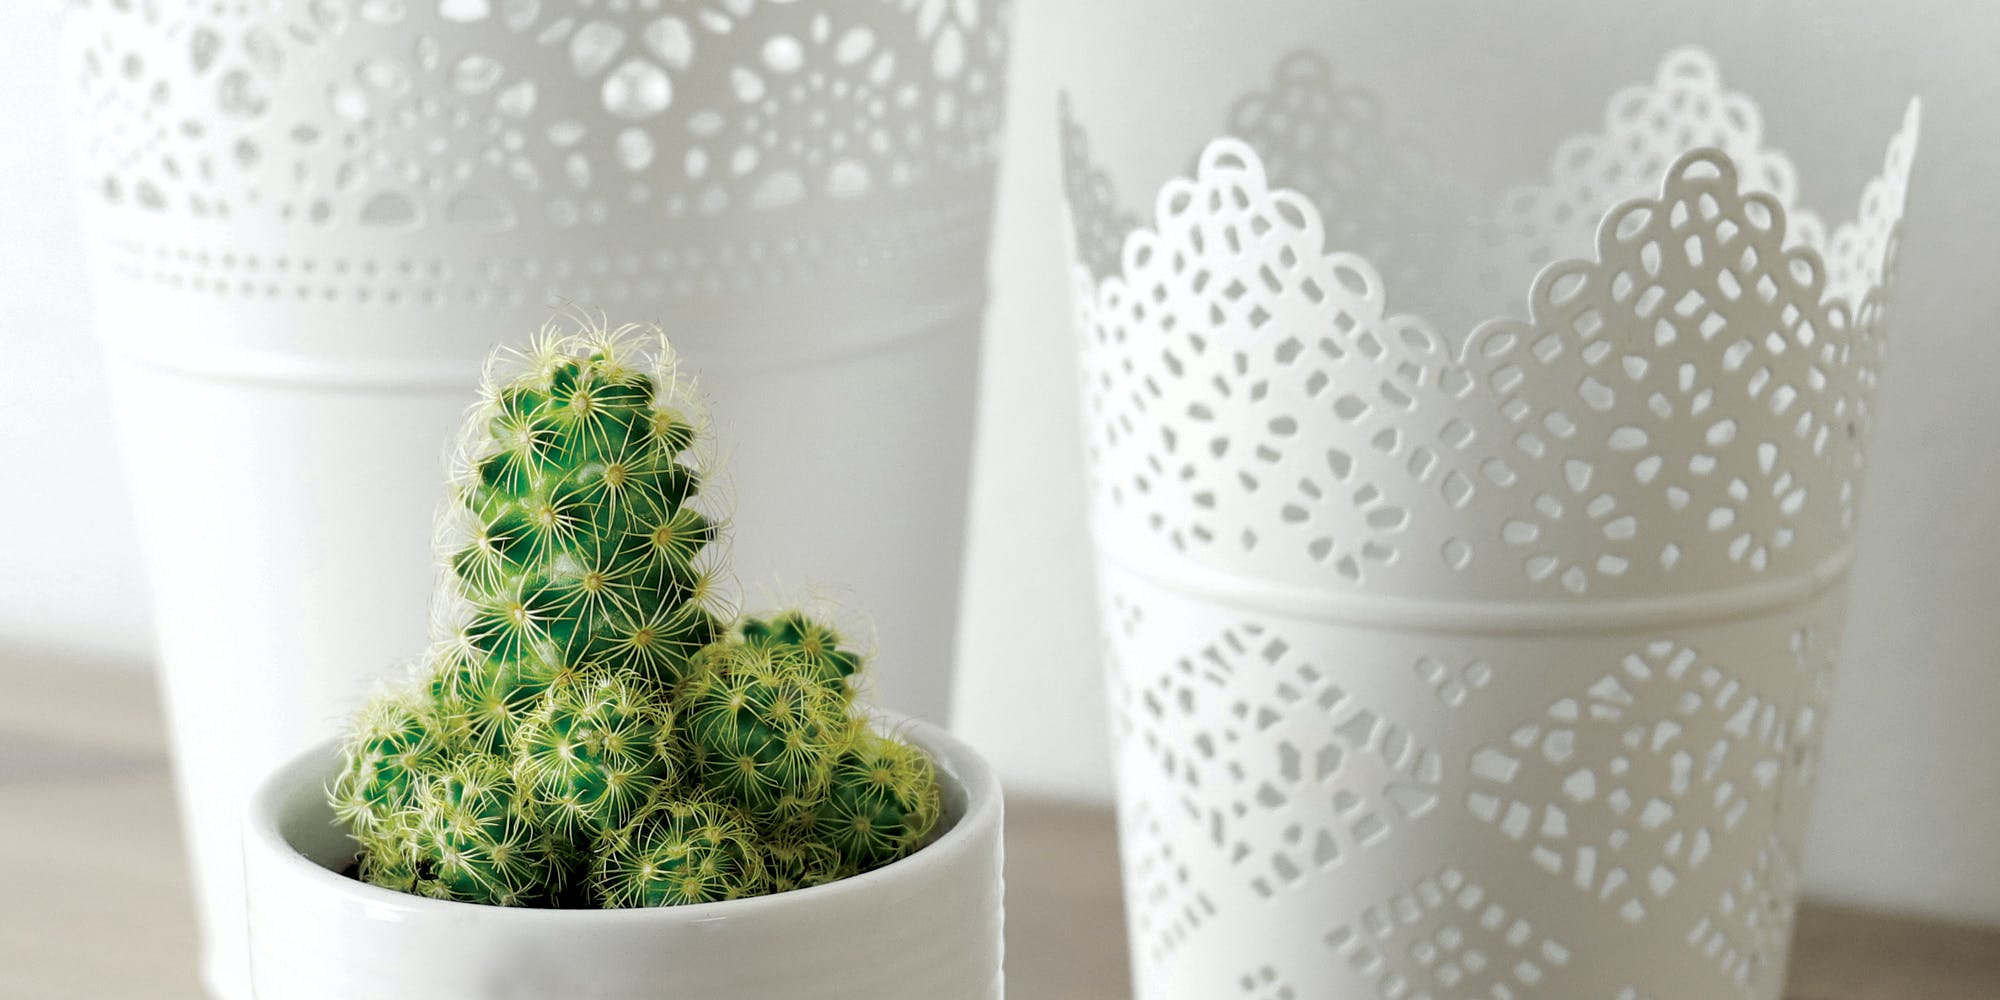 Cactus Plant and White Ceramic Pot